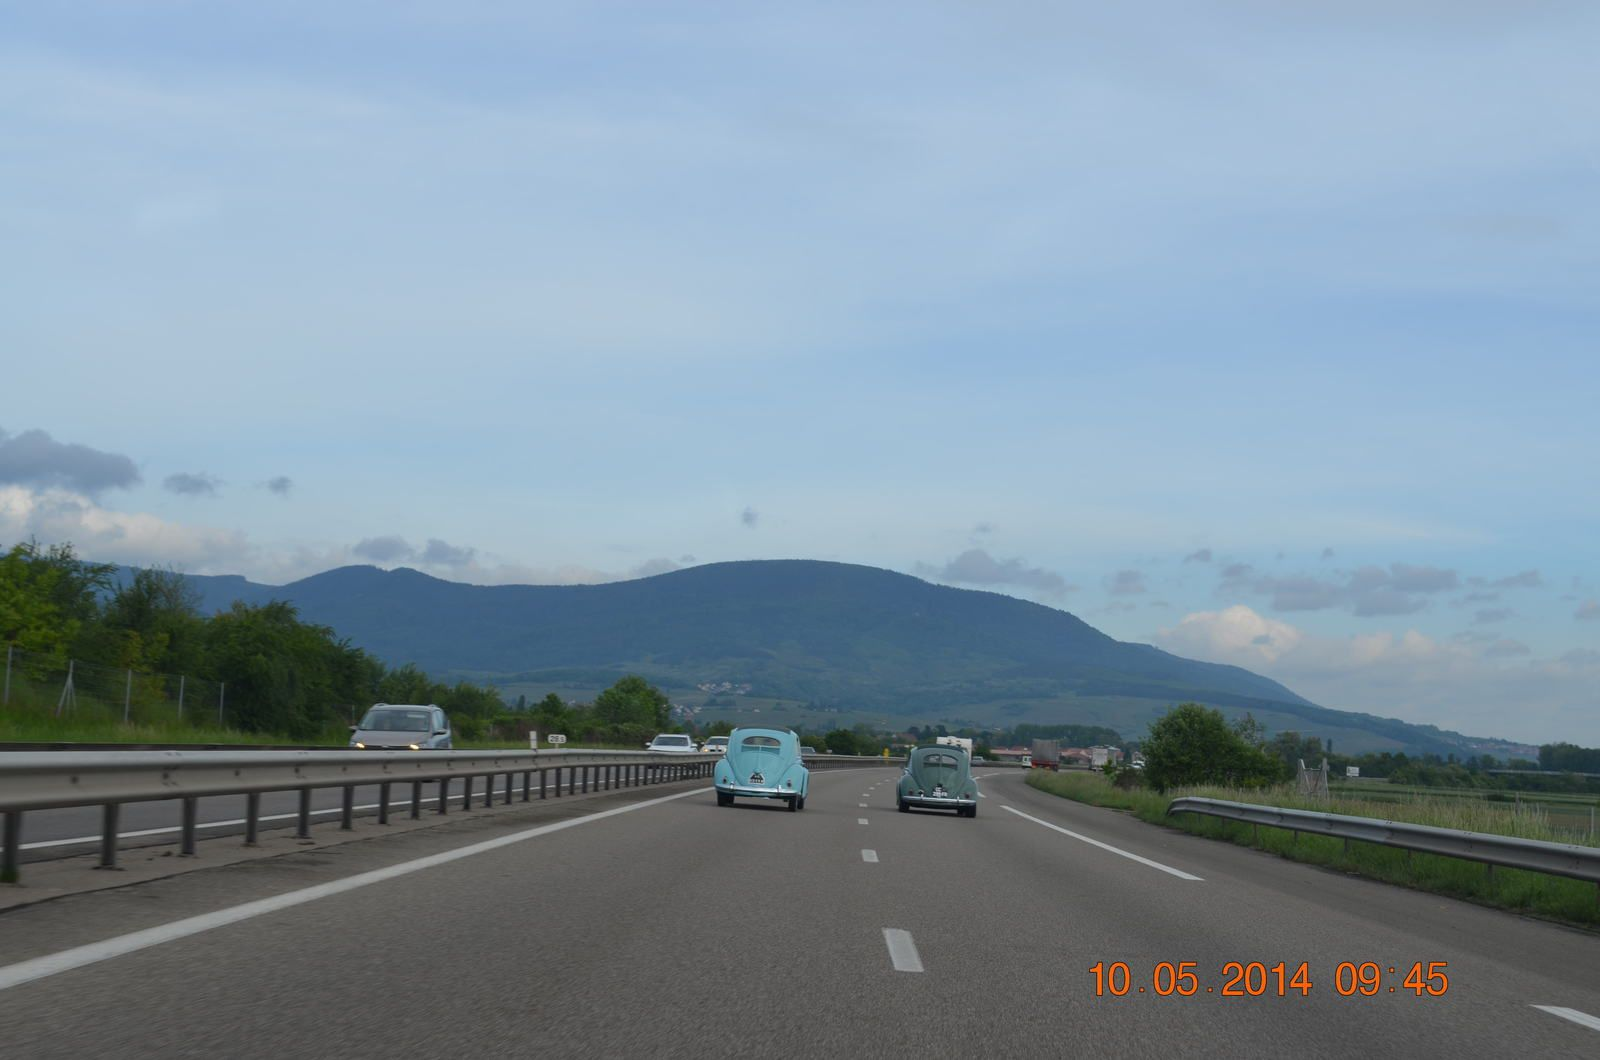 Sur la route Split vs Ovale